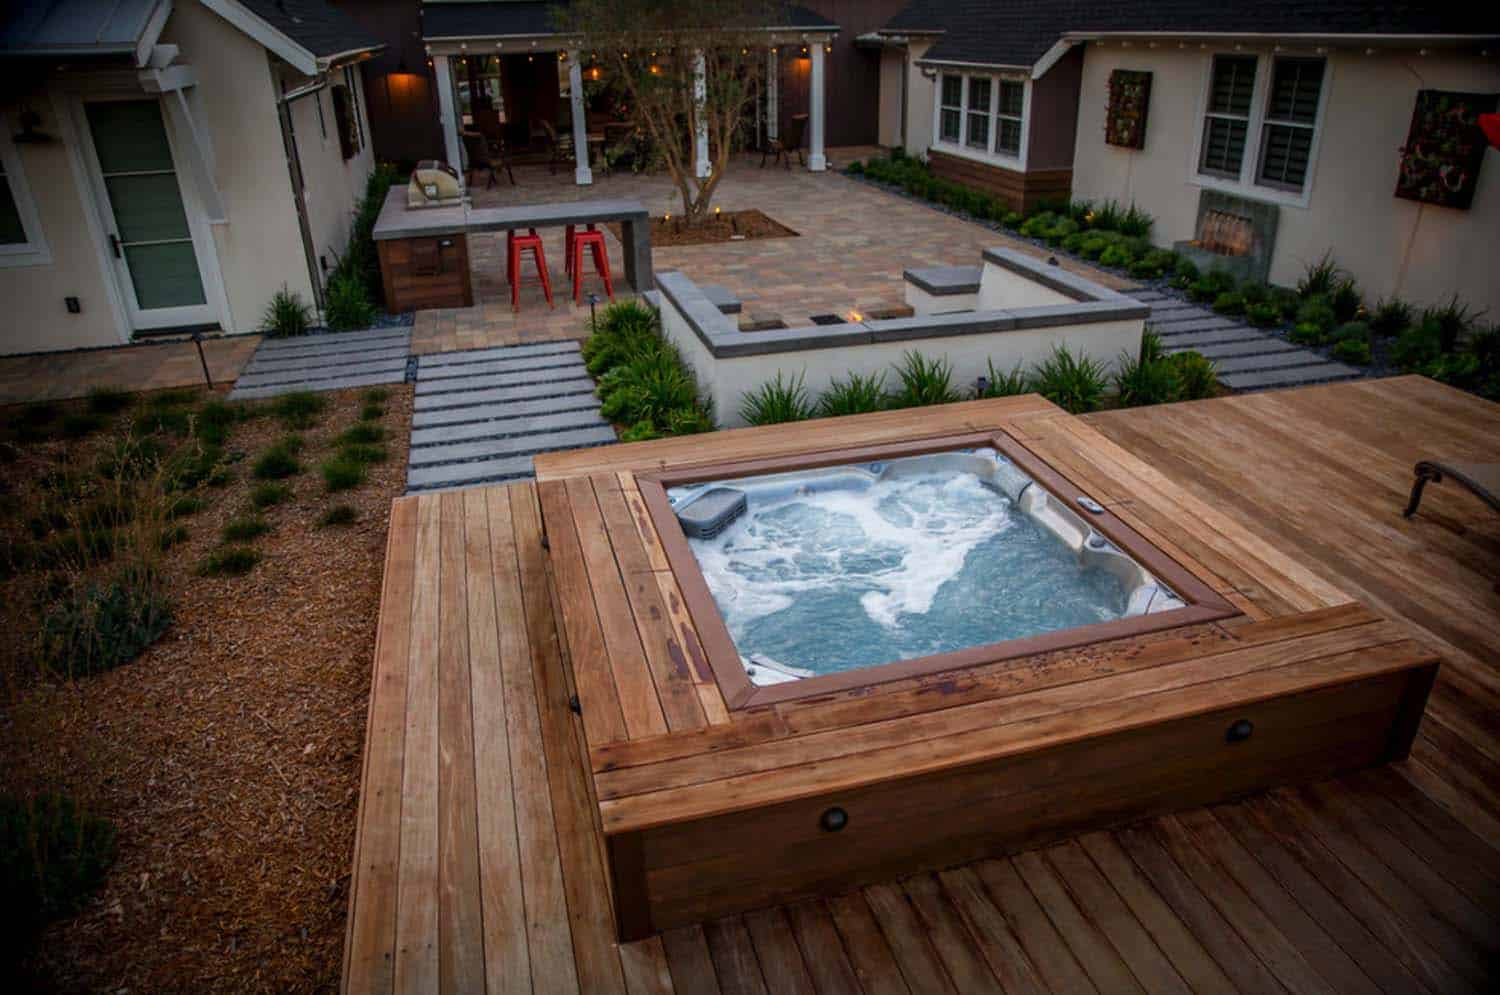 40+ Outstanding Hot Tub Ideas To Create A Backyard Oasis on Deck And Hot Tub Ideas  id=32417